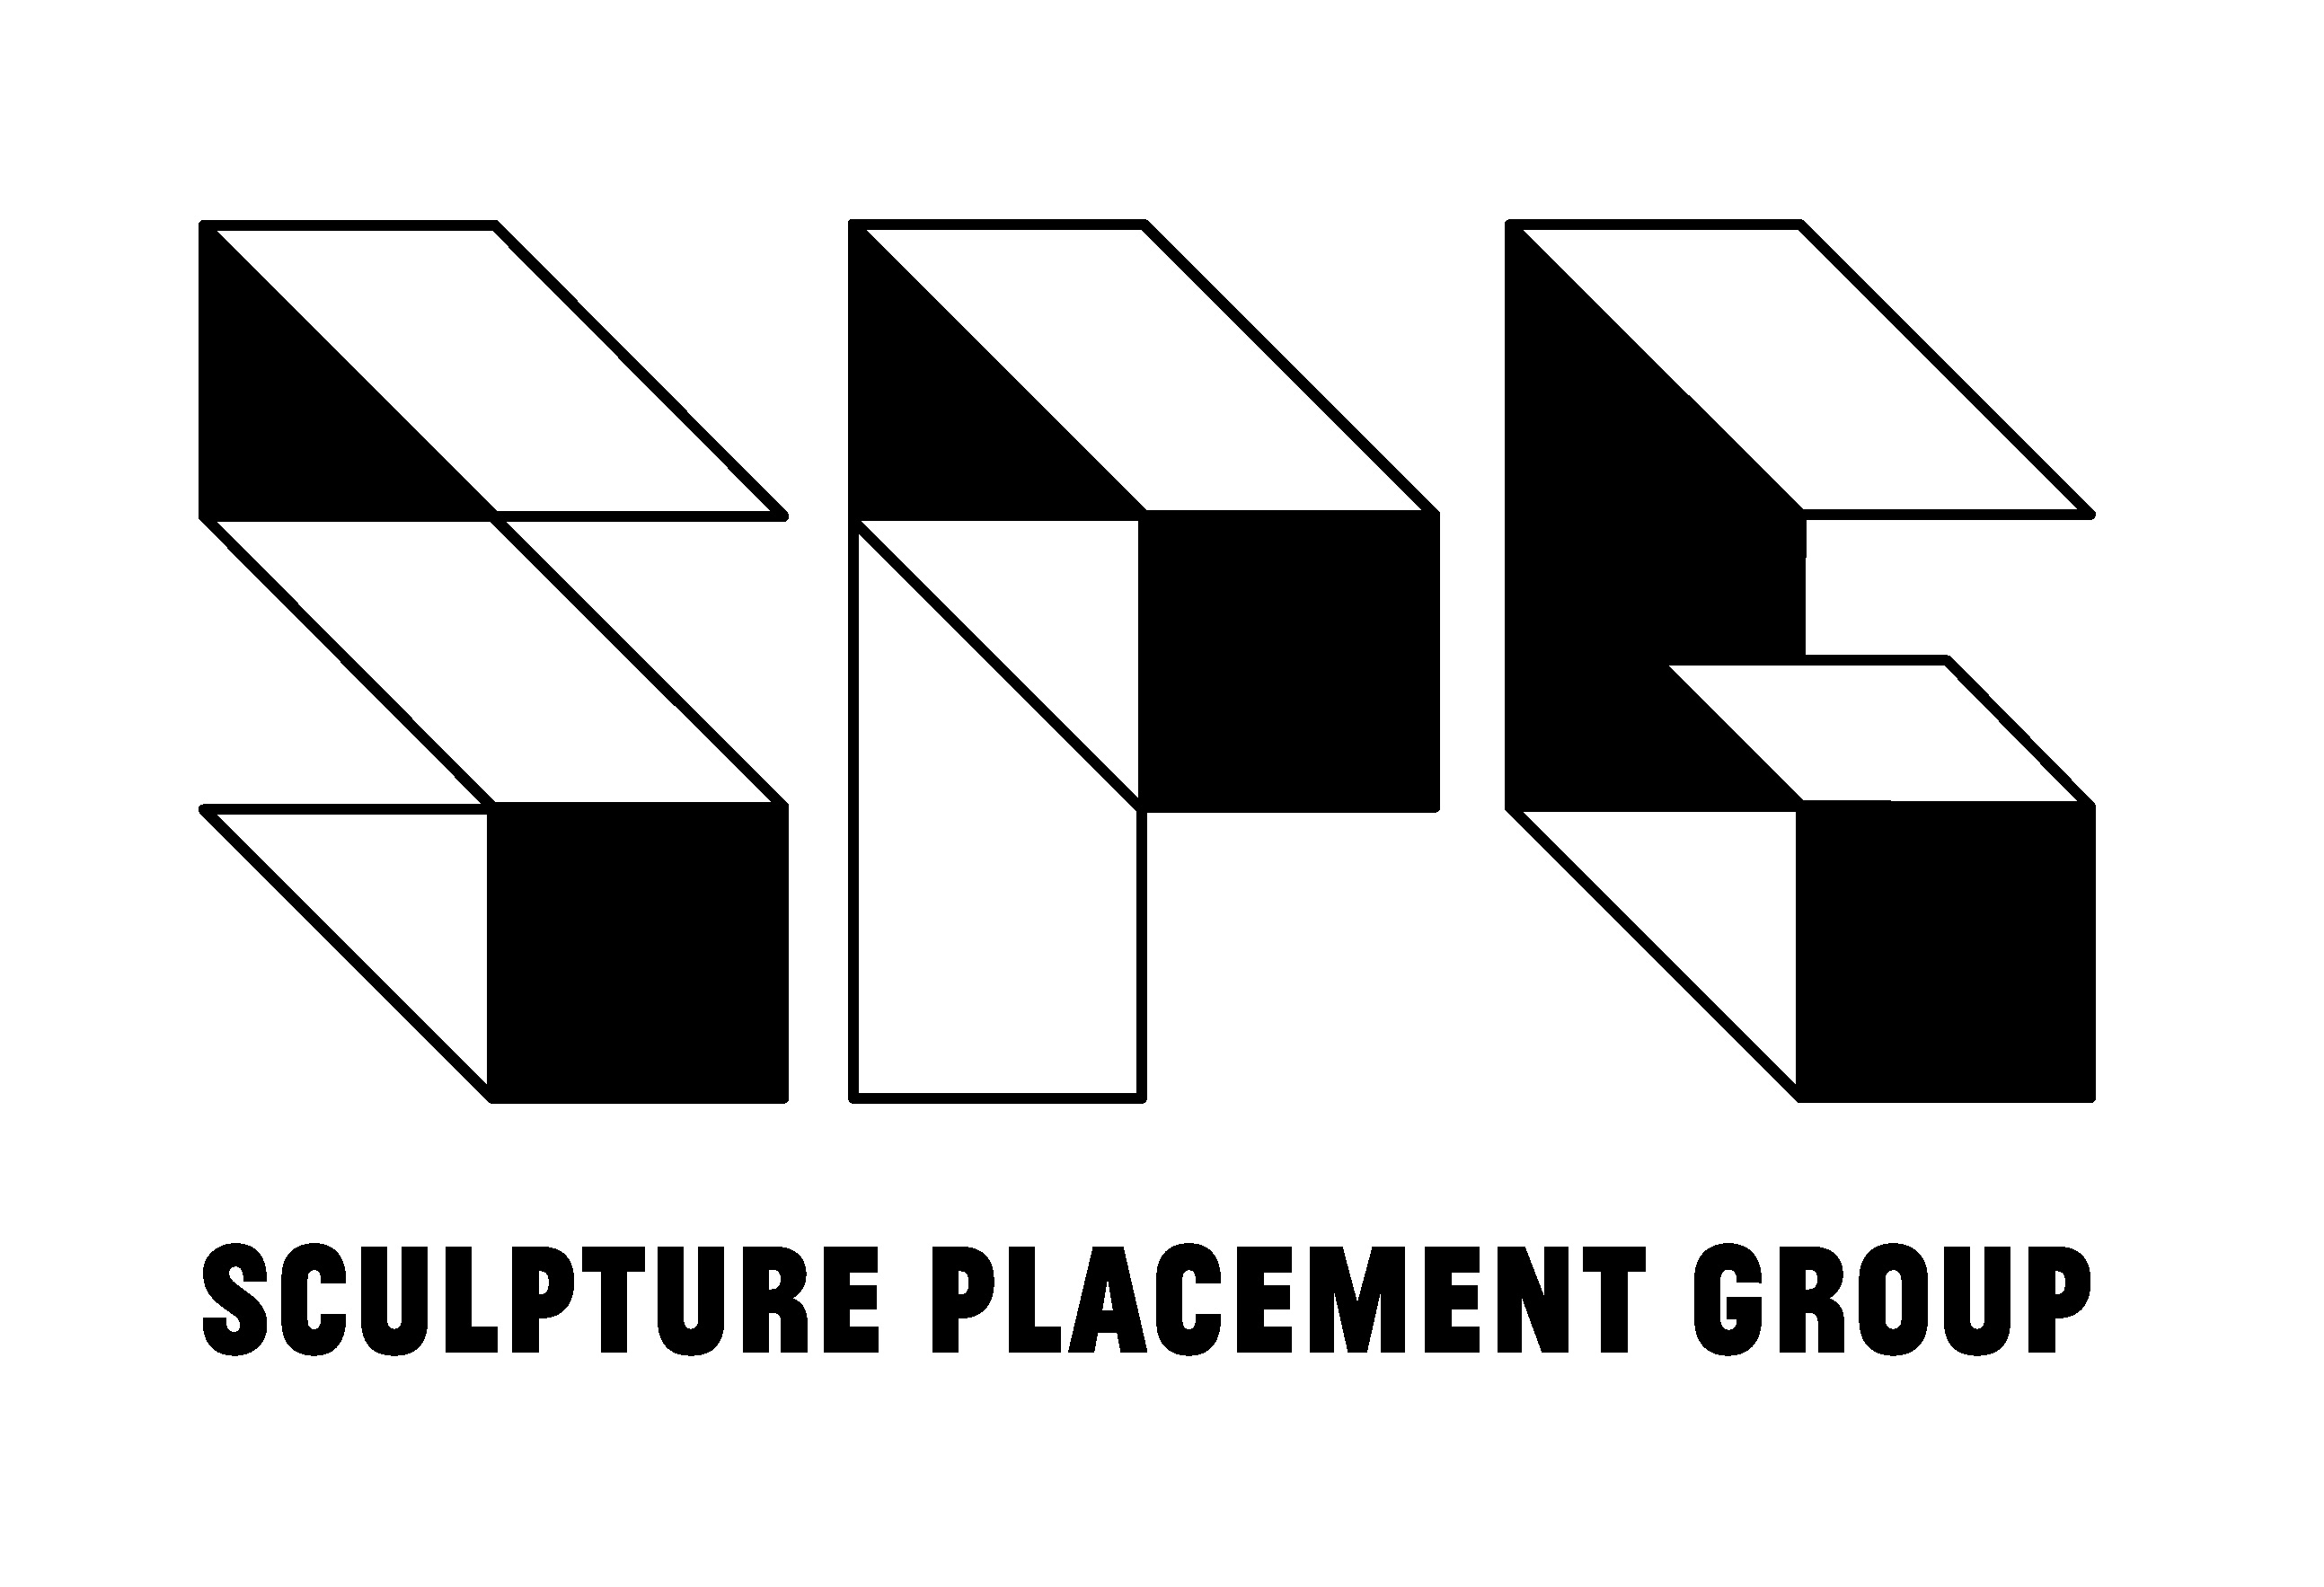 Sculpture Placement Group